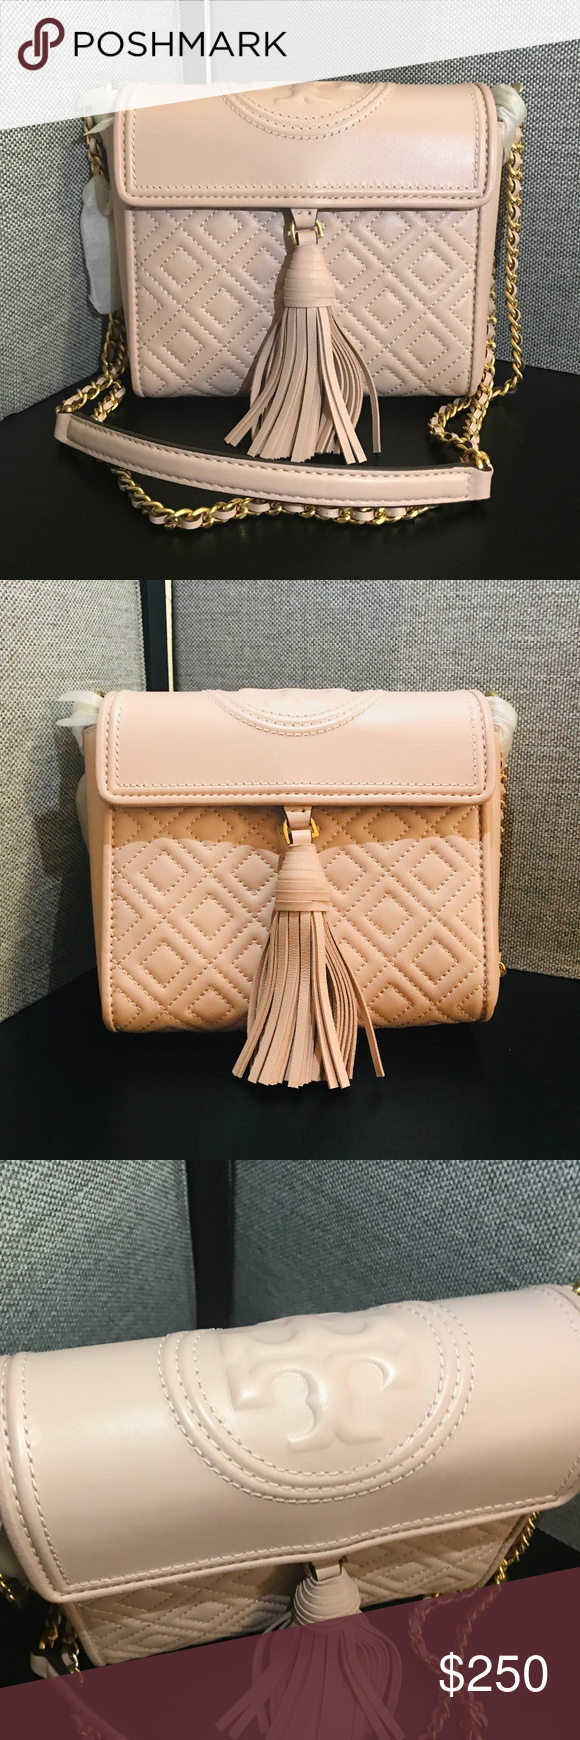 de392753f TORY BURCH FLEMING BOX CROSSBODY NWOT - FLEMING BOX CROSSBODY COLOR SHELL  PINK/652 VERY